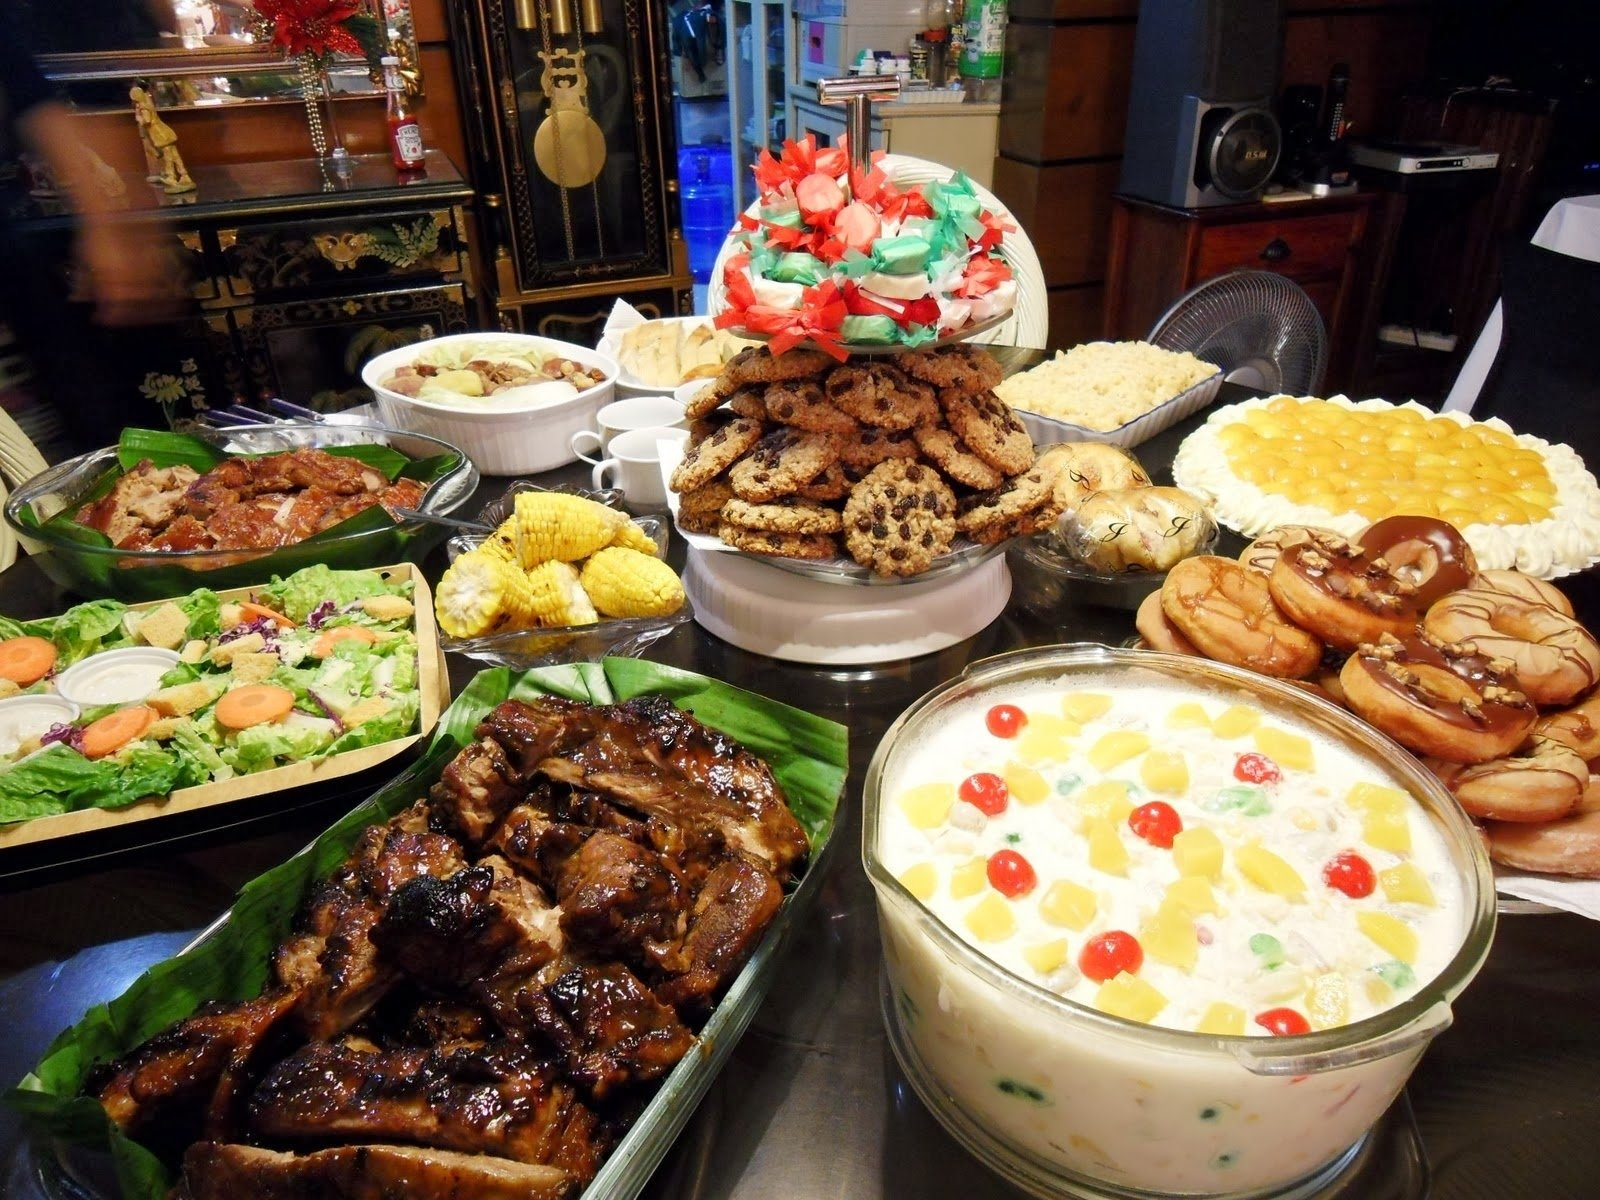 10 Cute New Years Eve Food Ideas filipino media noche recipes on new years eve barako newsline 1 2020